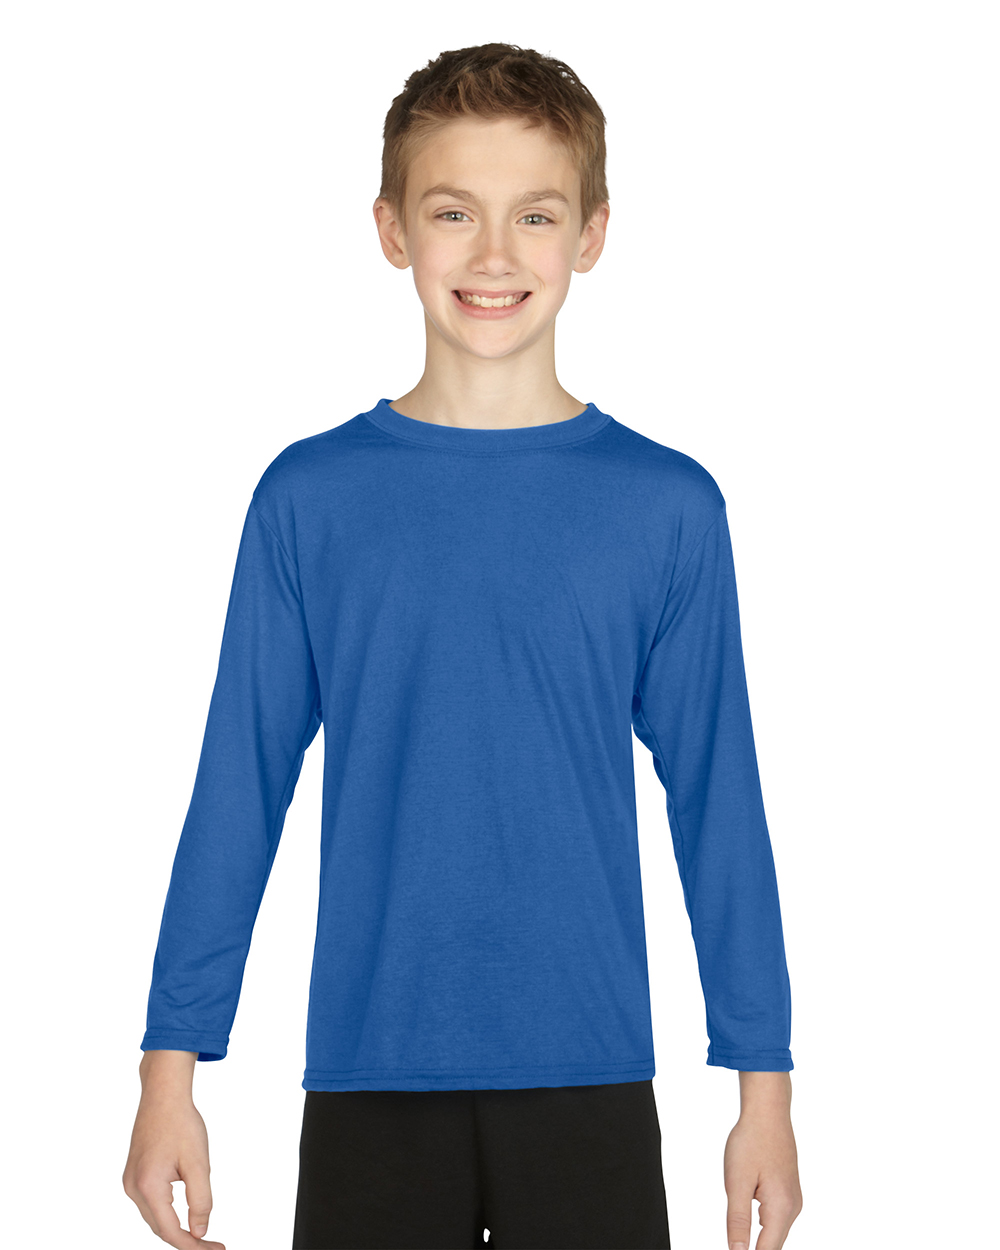 Gildan 42400B     Youth Long Sleeve Performance     4.5 oz. 100% Polyester (Cotton Feel)